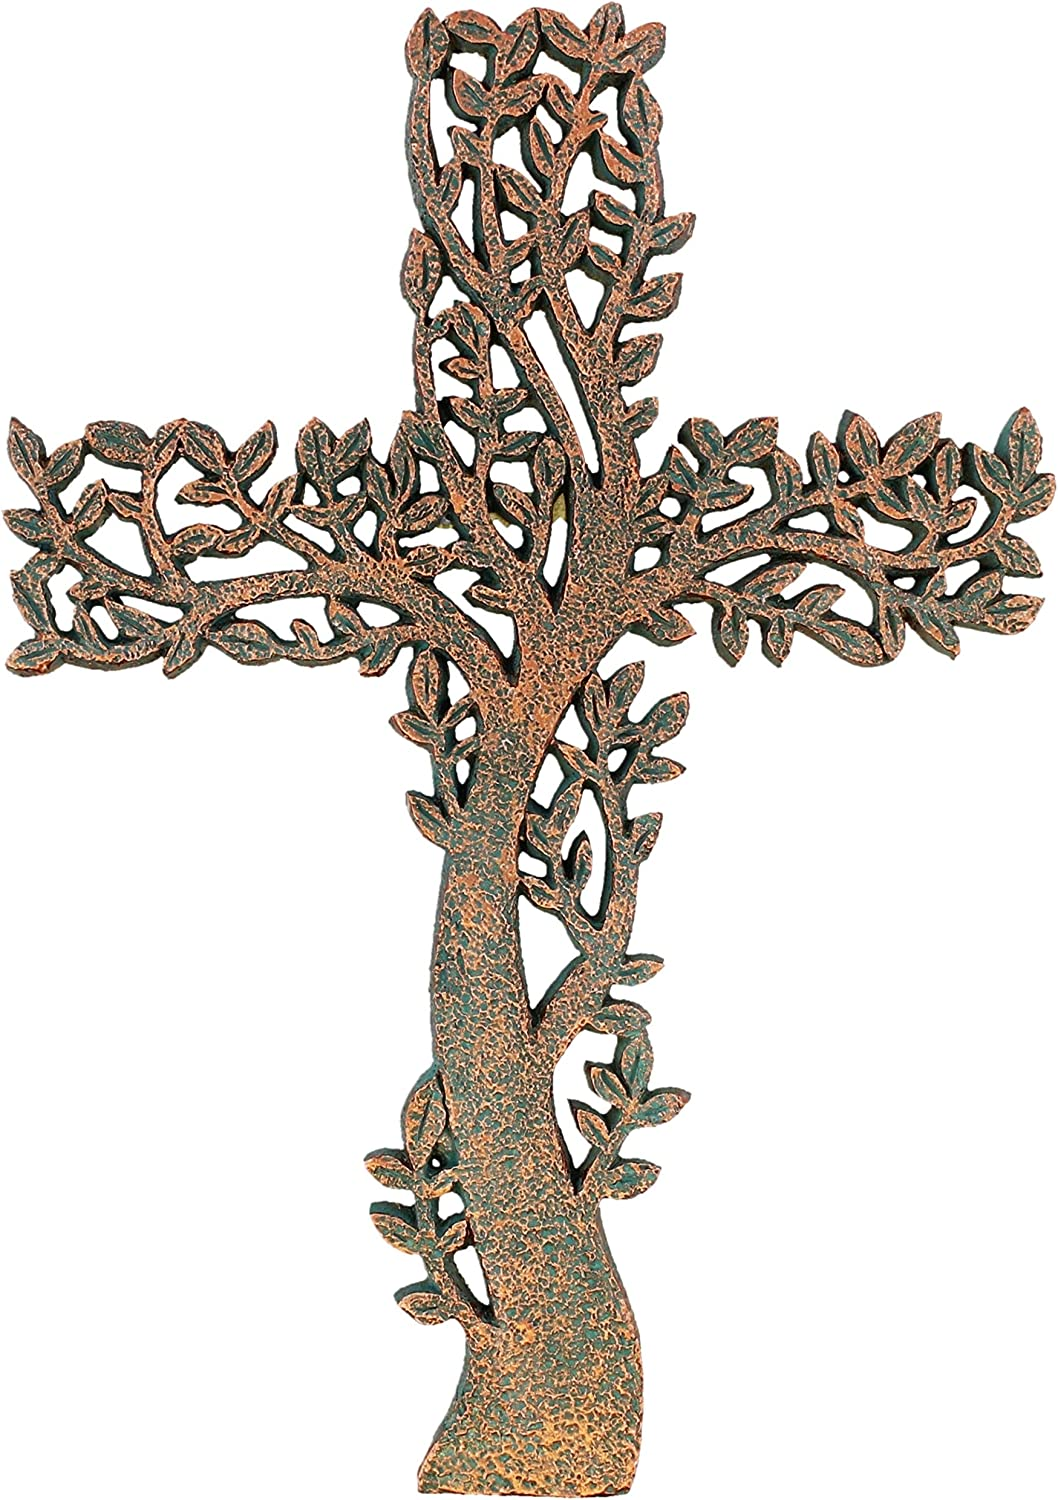 Old River Outdoors Tree of Life Wall Cross - Rustic Copper/Verdigris Look Decorative Spiritual Art Sculpture